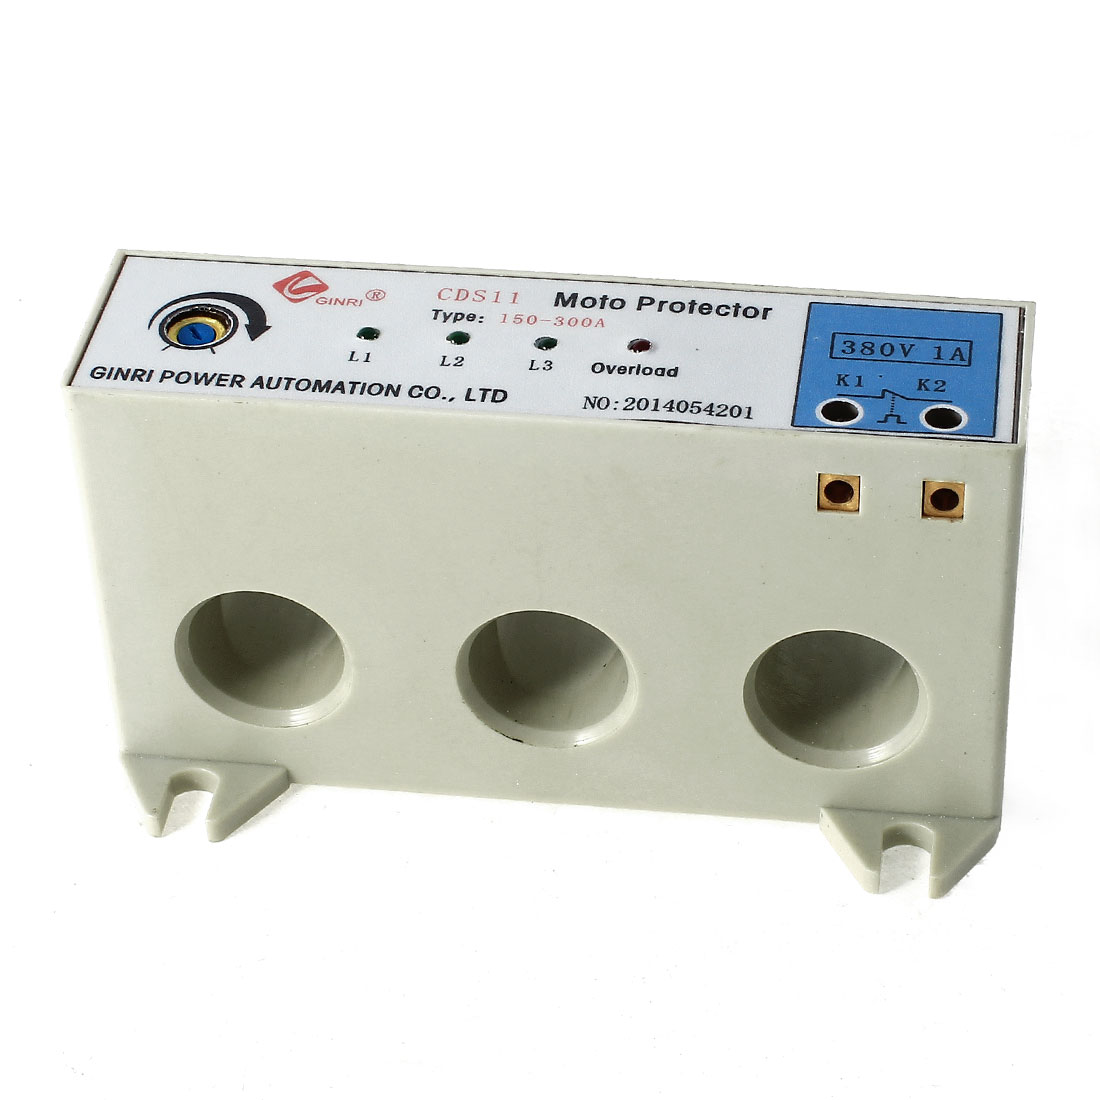 CDS-11/150-300A 3 Phase 150-300 Ampere Adjustable Current Breaker Motor Circuit Protector Non Power